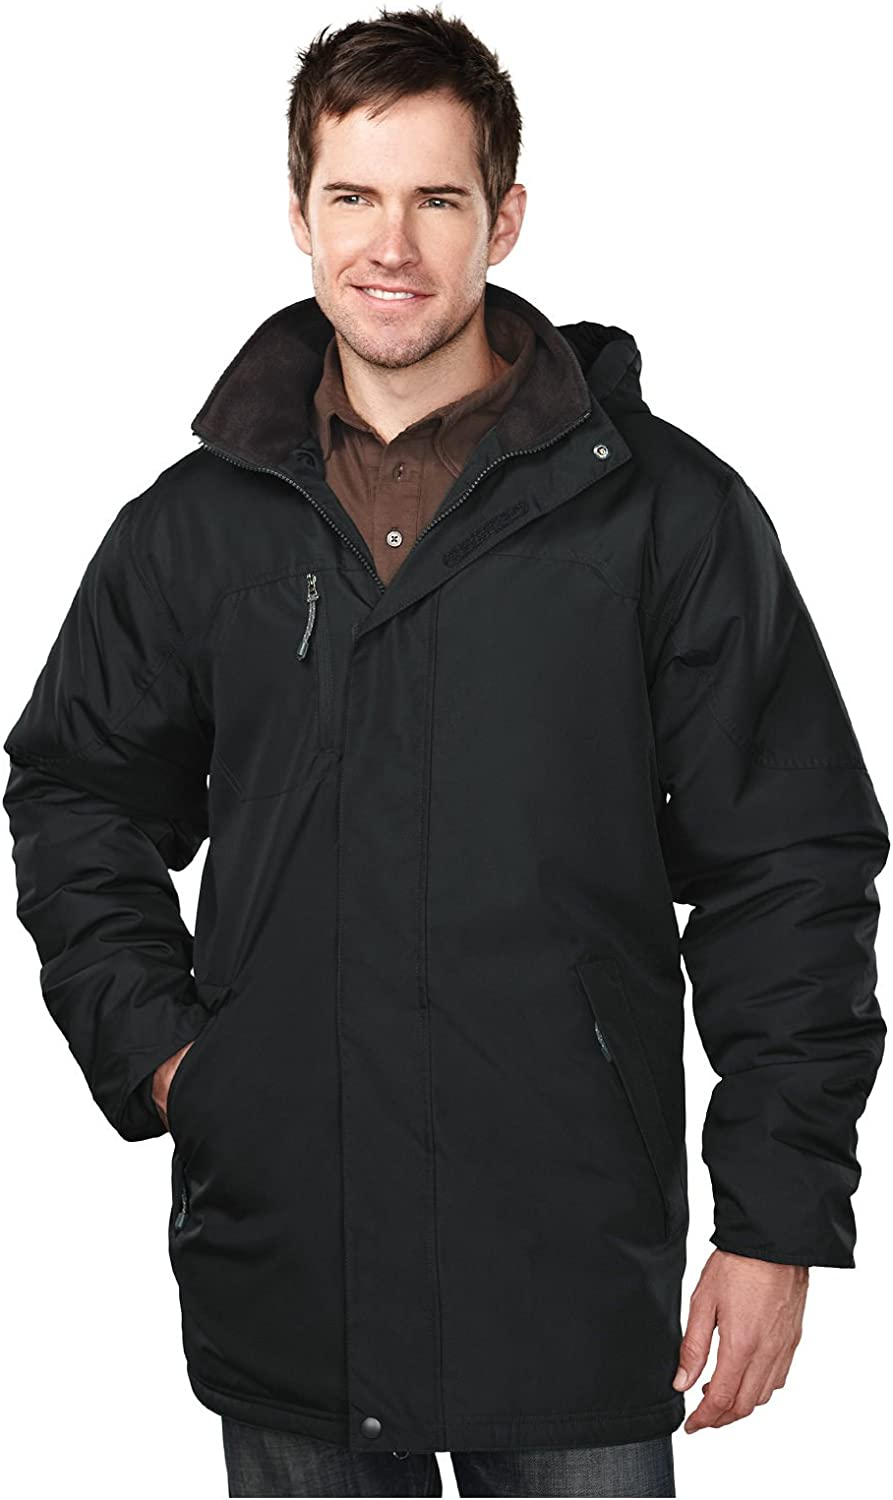 Tri-mountain Mens 100% Polyester long sleeve jacket with water resistent - BLACK/BLACK - XXX-Large